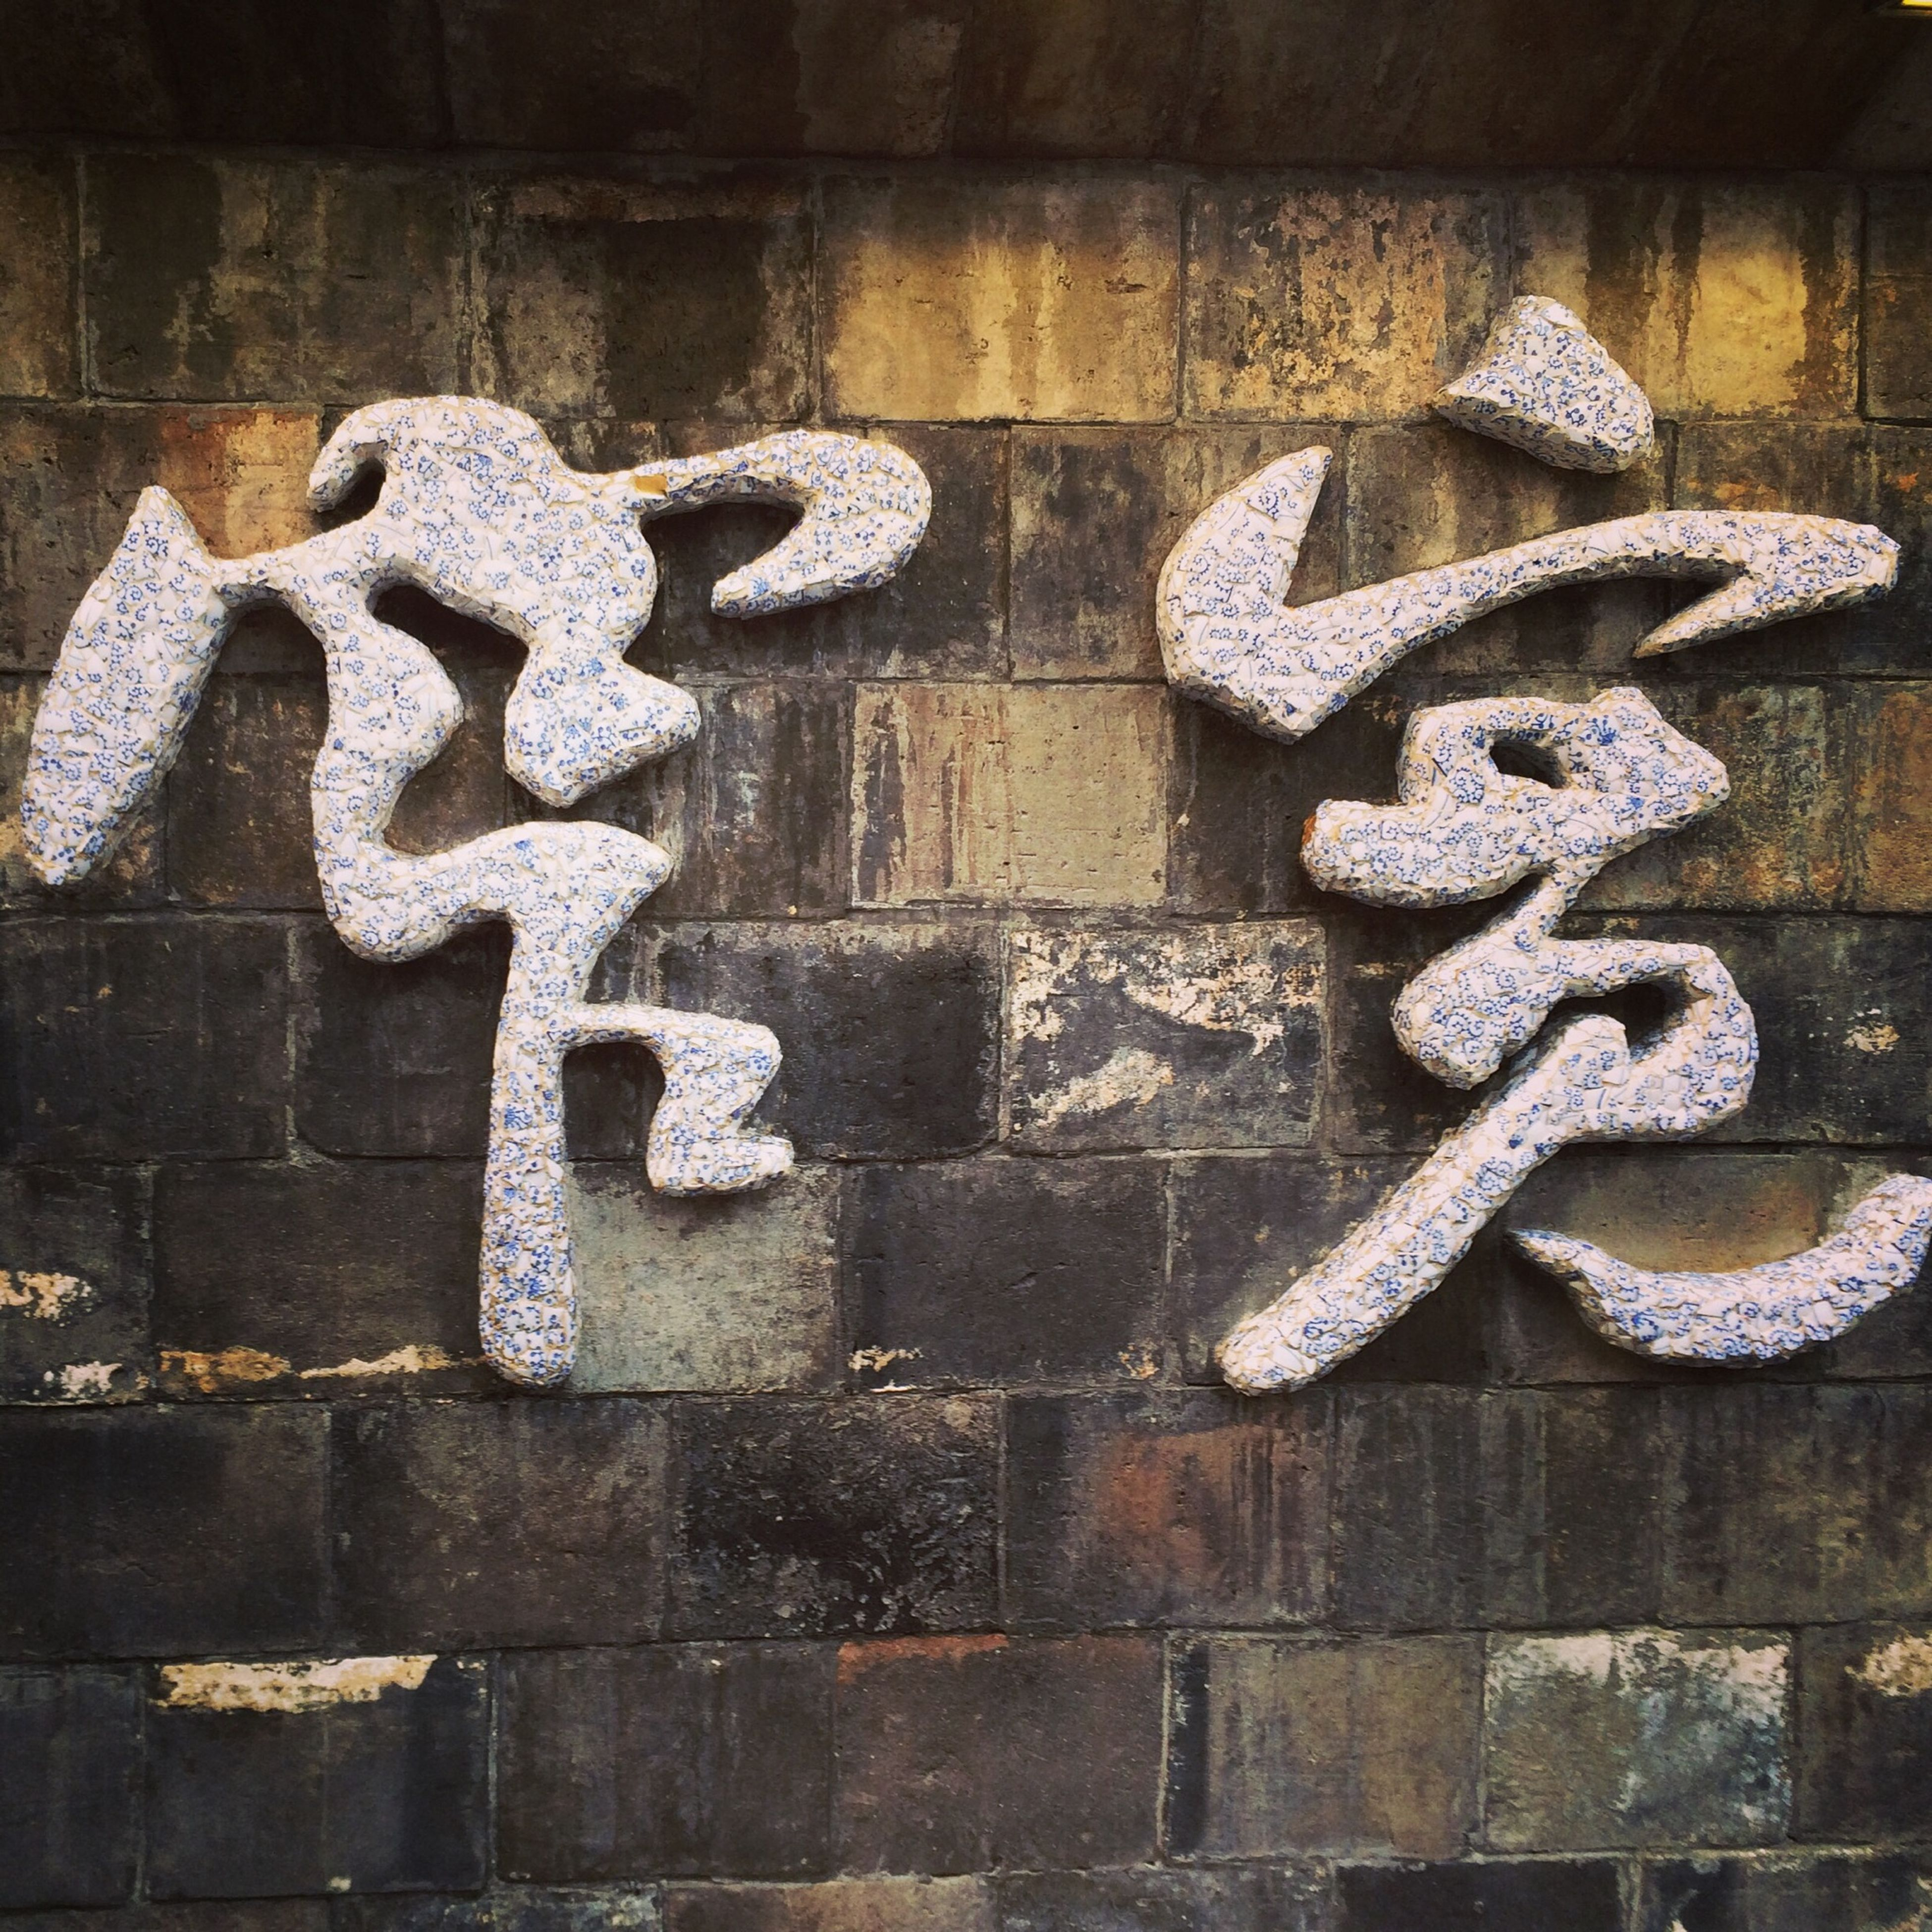 wall - building feature, art, art and craft, creativity, text, graffiti, human representation, communication, western script, wall, close-up, indoors, built structure, architecture, brick wall, no people, textured, animal representation, capital letter